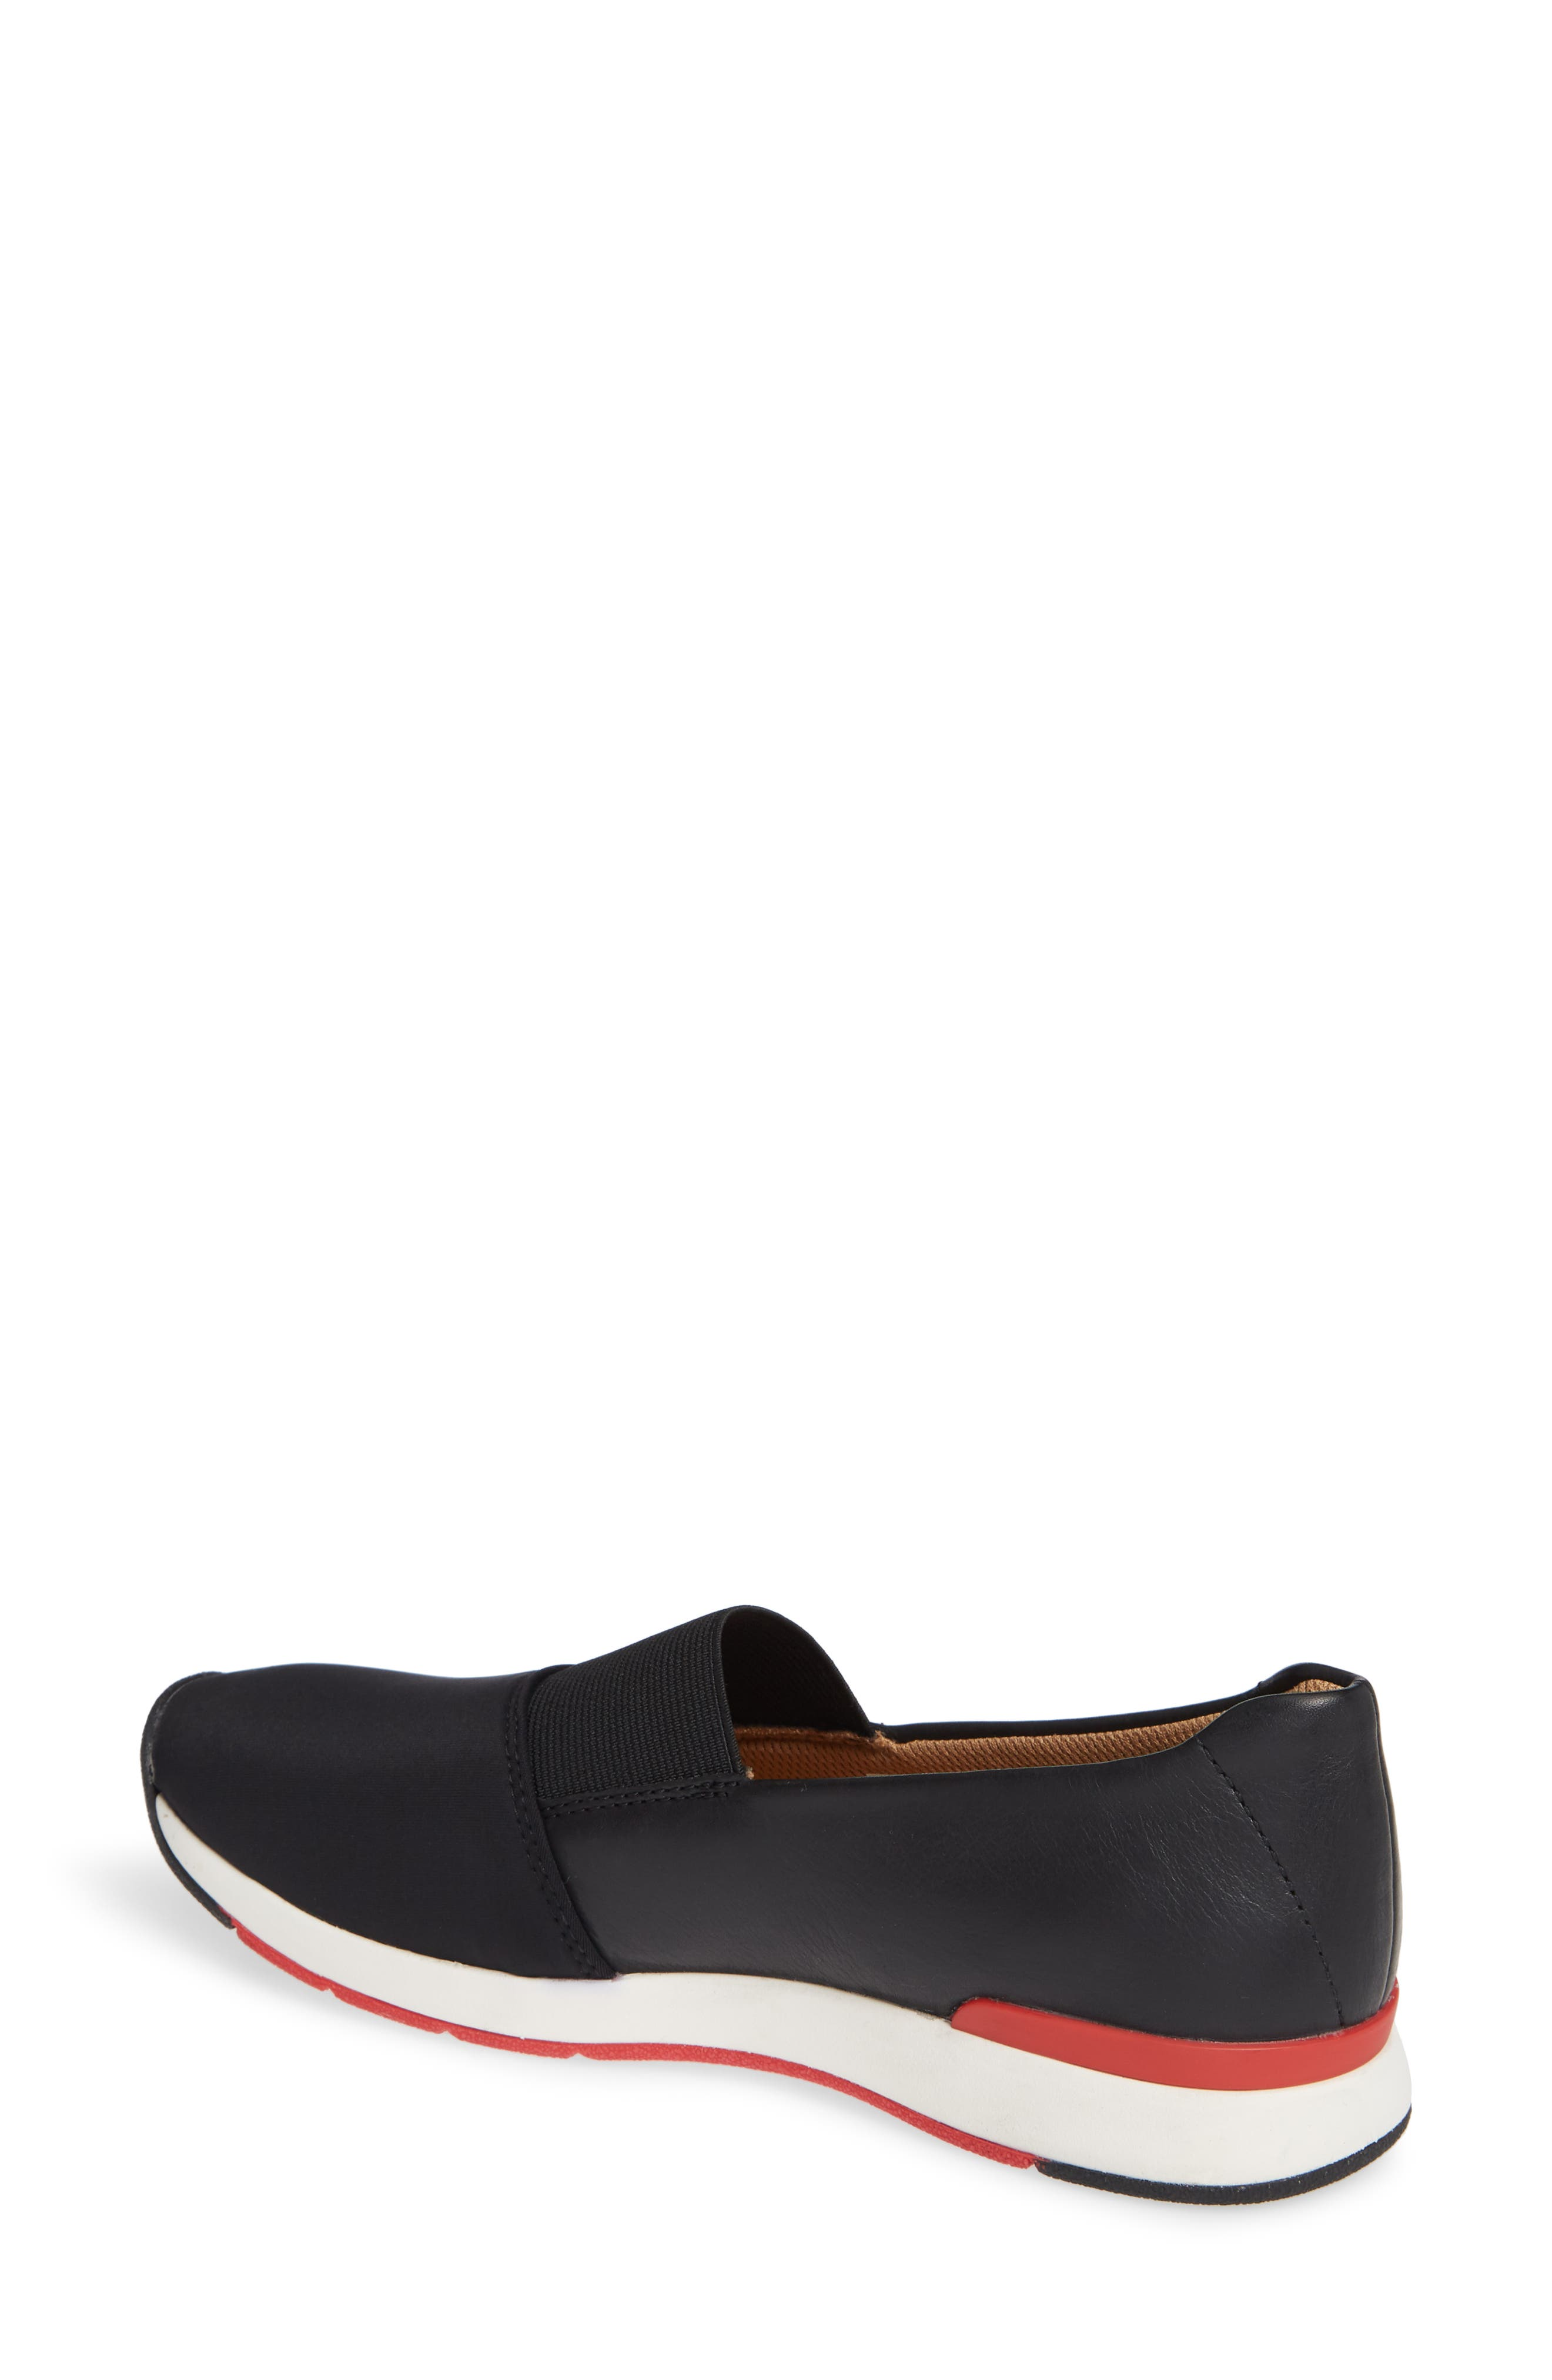 Cameo Slip-On Shoe,                             Alternate thumbnail 2, color,                             BLACK LEATHER NEOPRENE